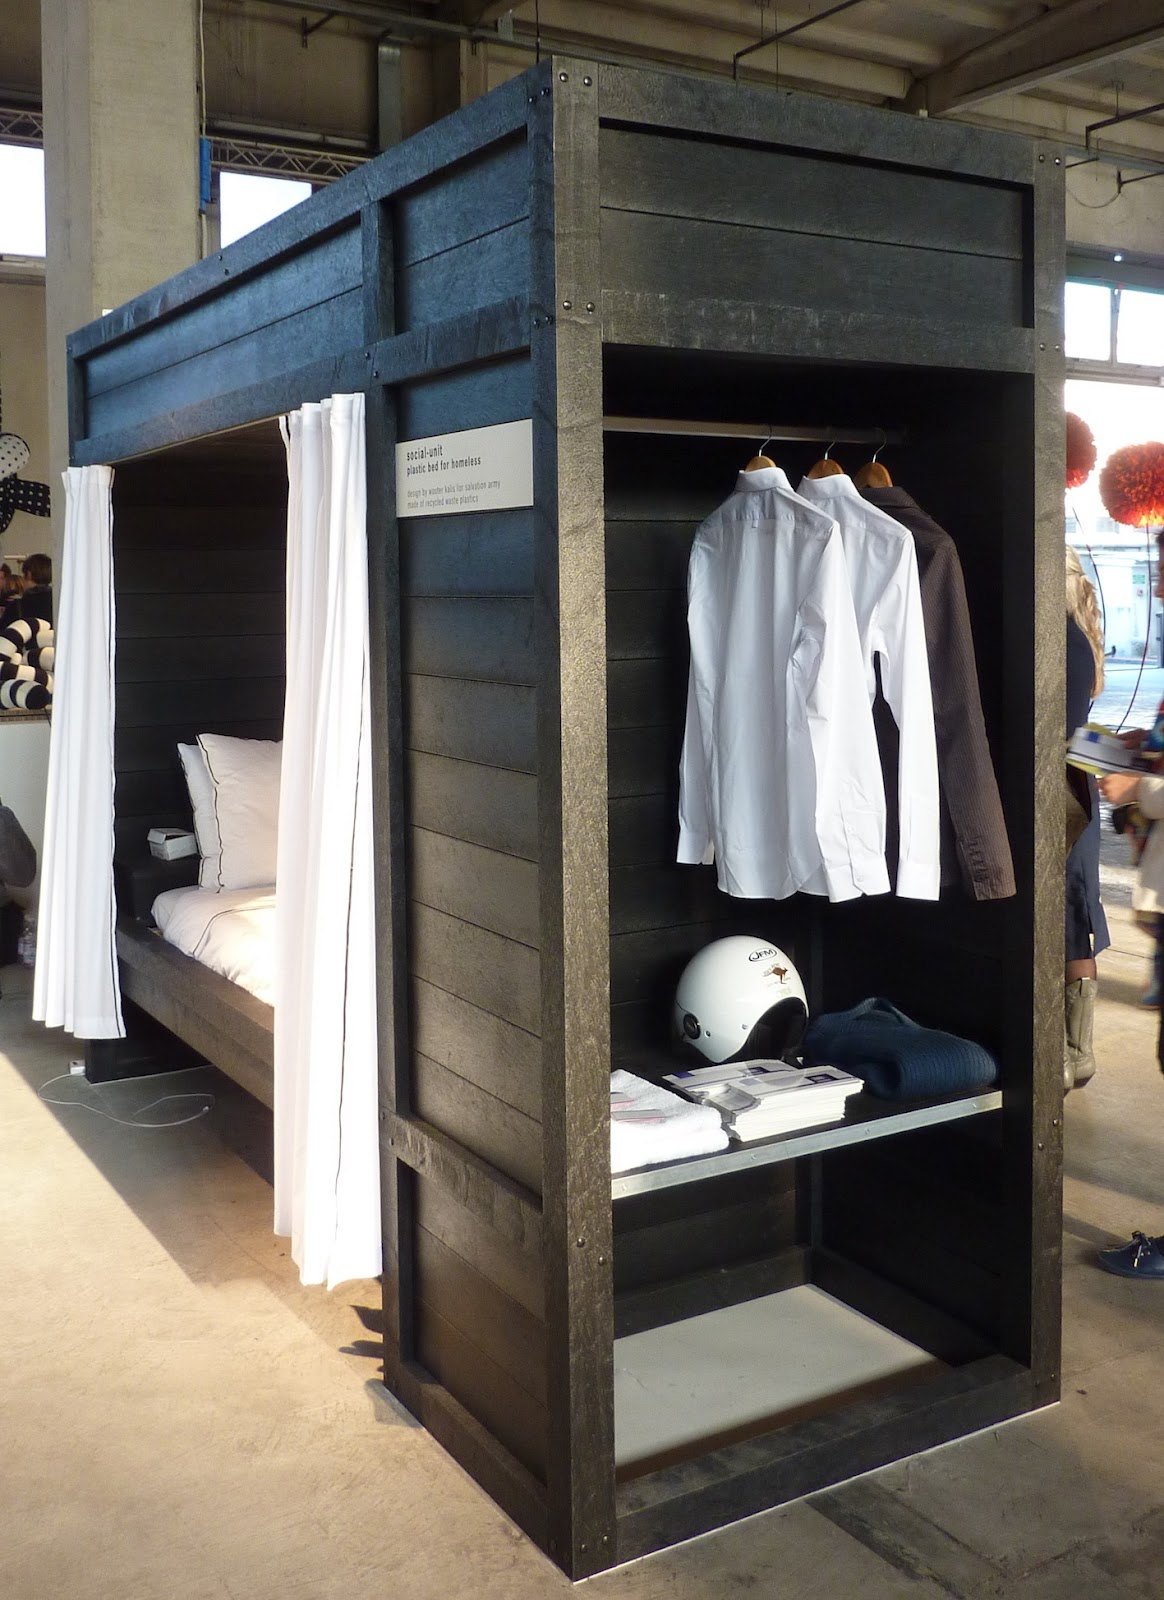 Clothespeggs Bed Room For The Homeless By Social Unit